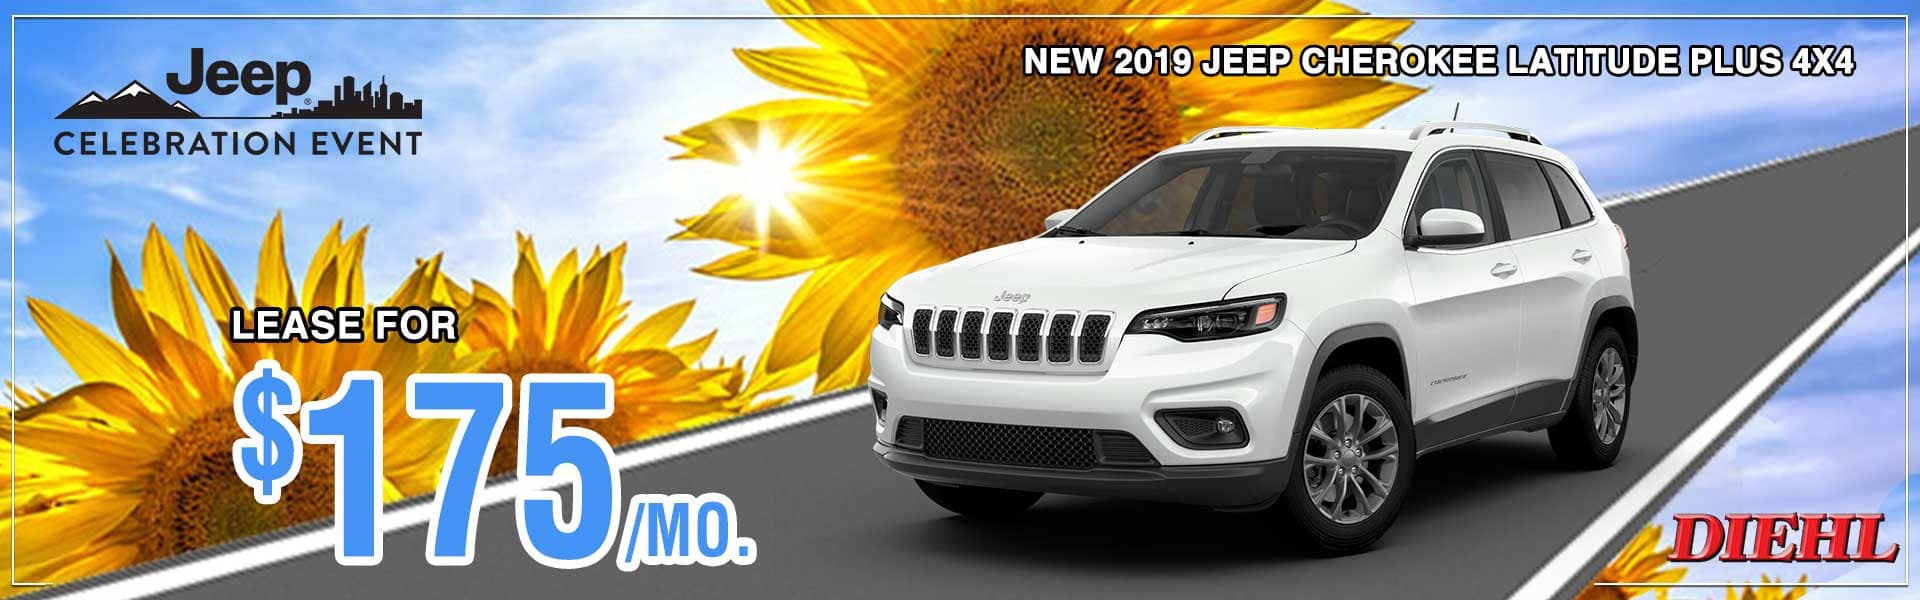 Diehl of Robinson Chrysler Jeep Dodge Ram. Robinson Township, PA 15136. New and used sales, service for all makes and models, parts, accessories, Mopar, collision center body shop. 2019 JEEP CHEROKEE